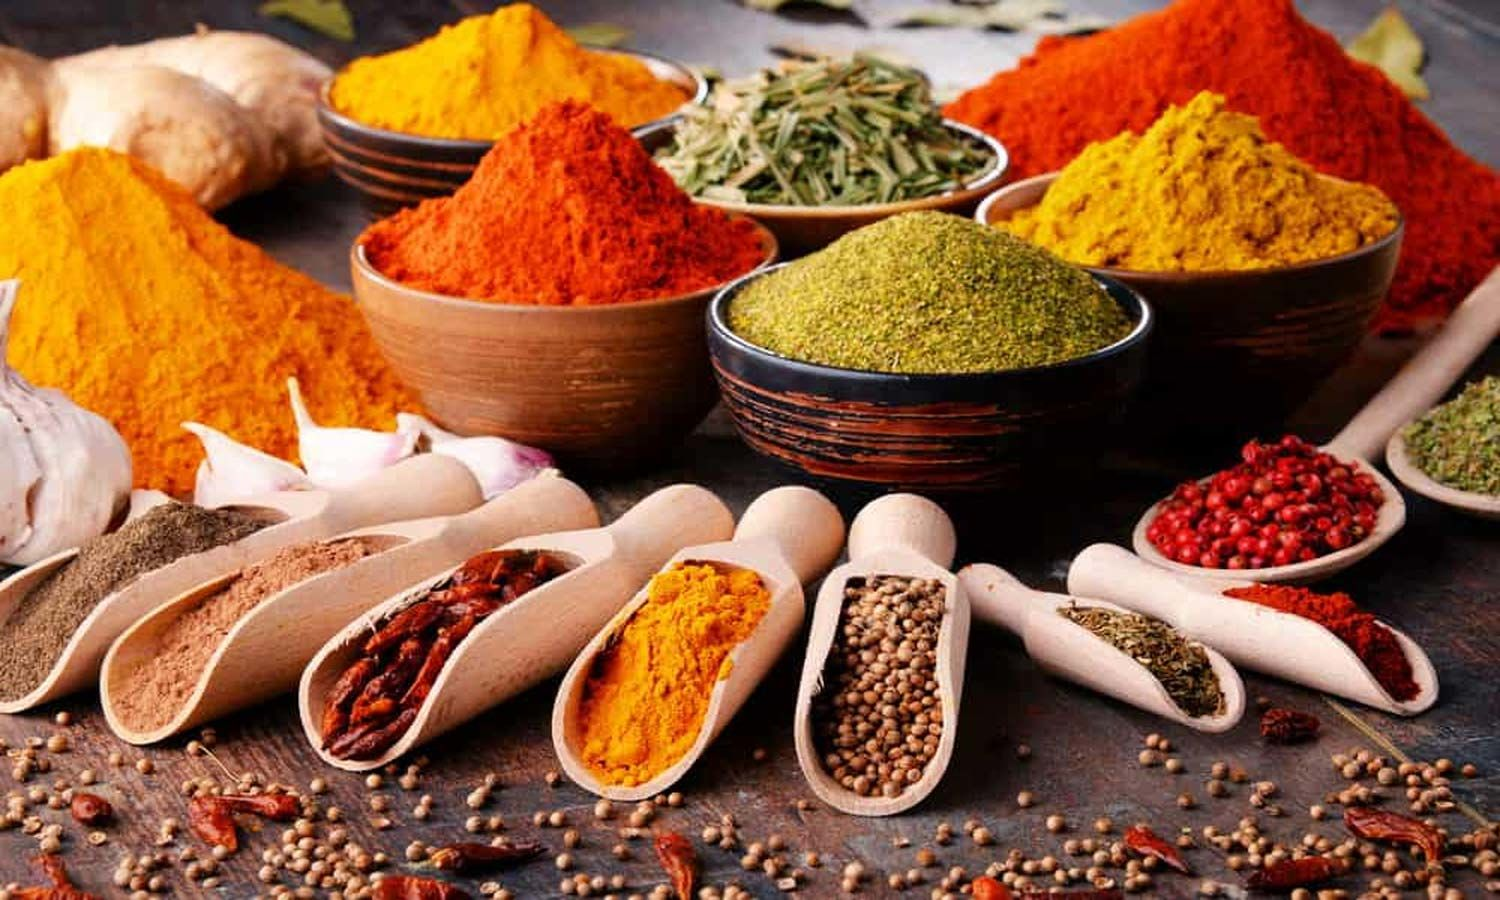 Spices may lower inflammation after high-fat high carbohydrates meal